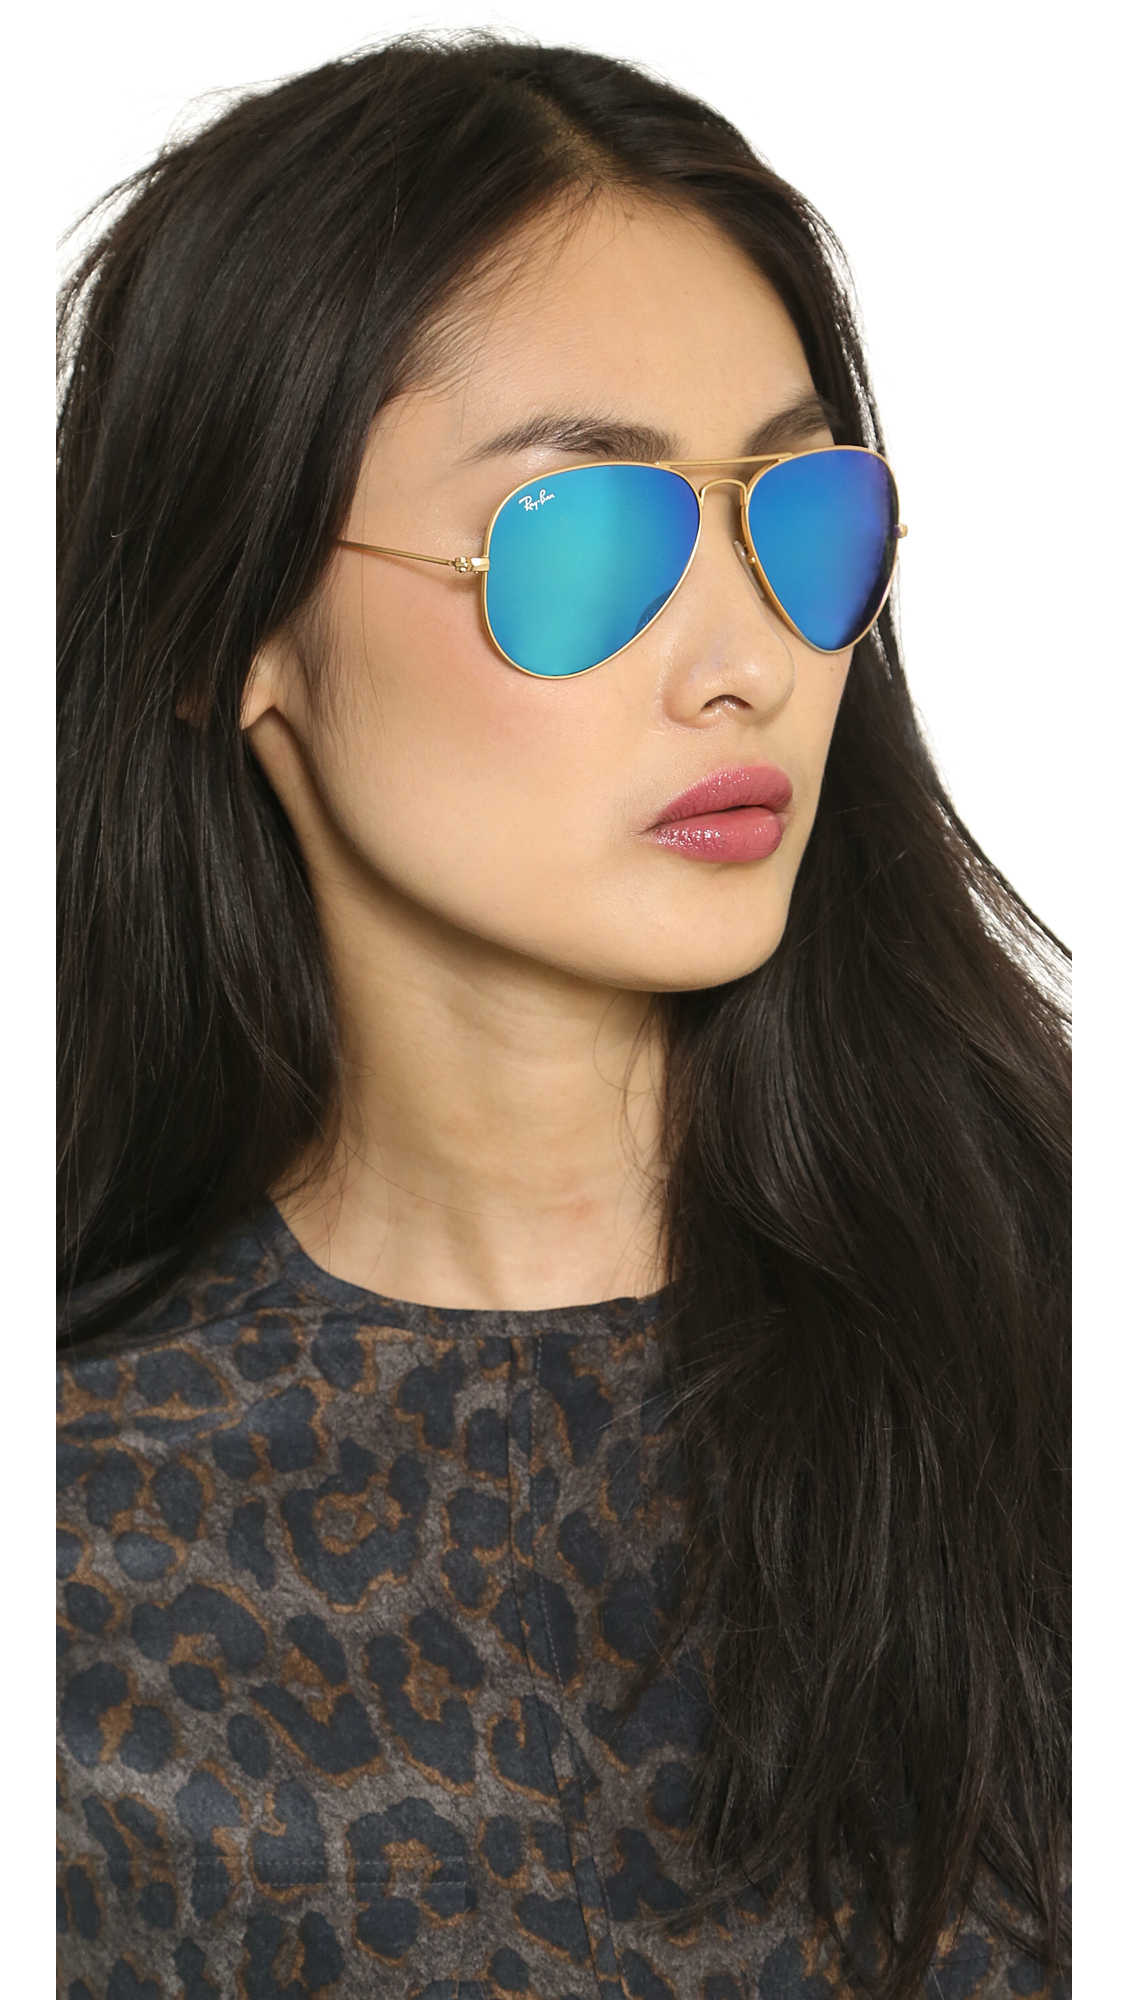 Ray-Ban Mirrored Matte Classic Aviator Sunglasses | SHOPBOP